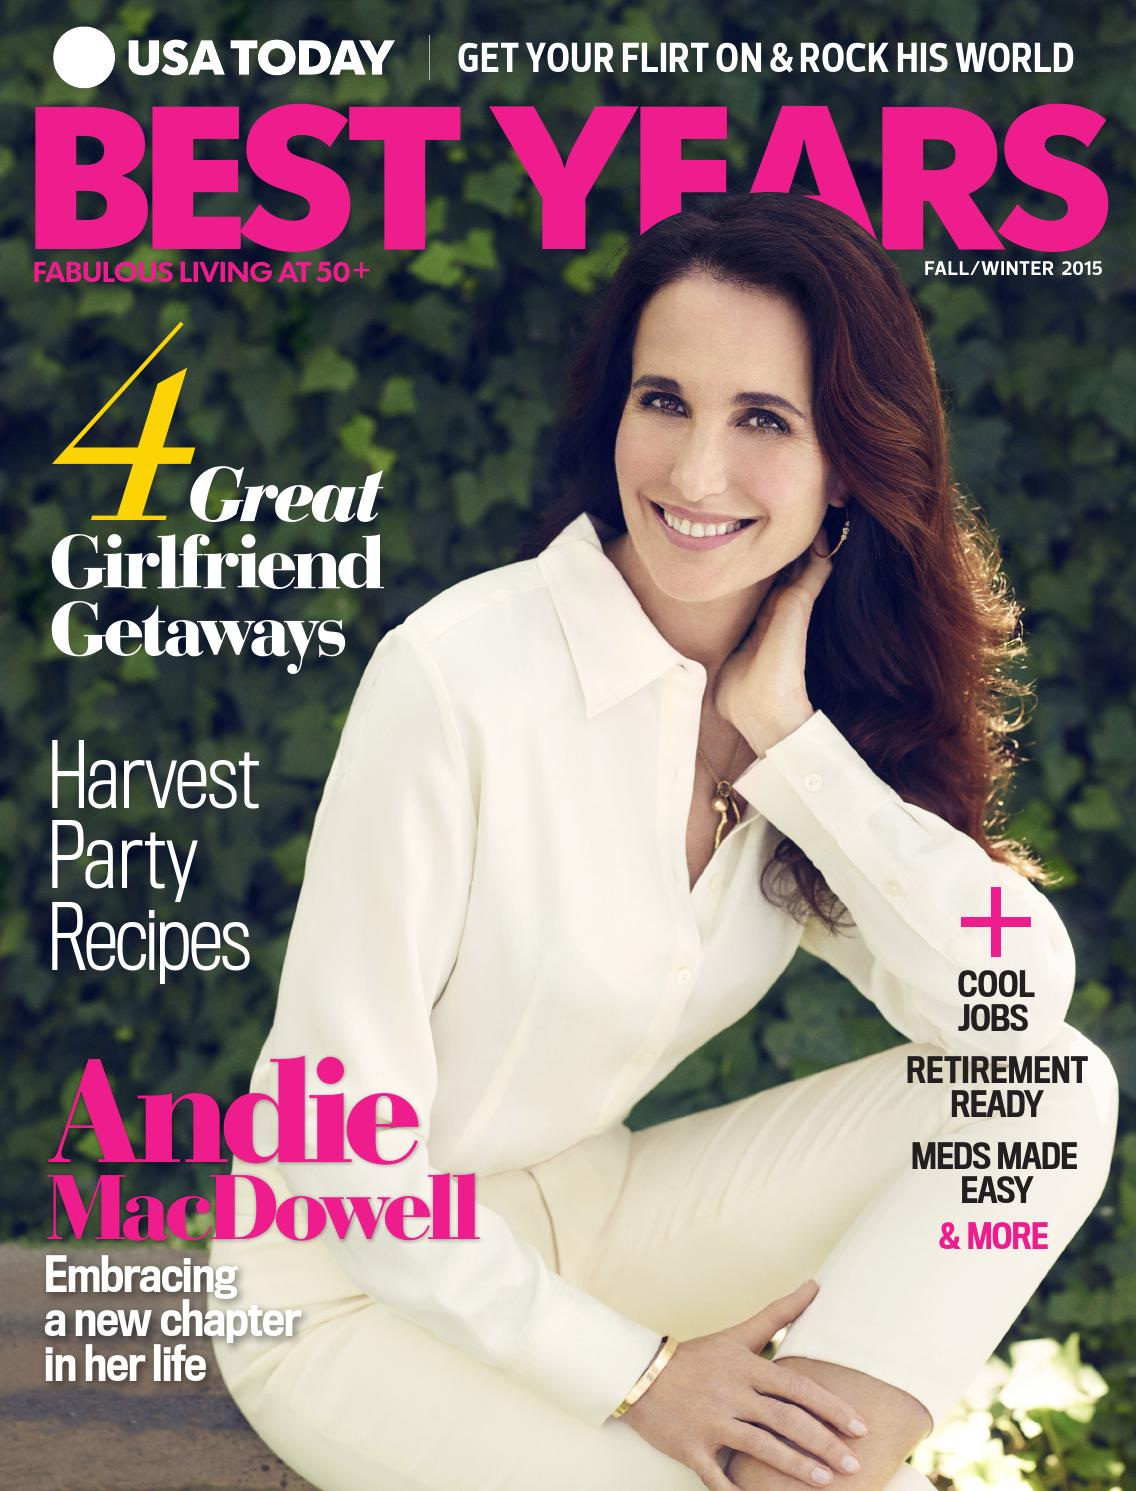 Andie Macdowell Bra Size best yearsstudio gannett - issuu